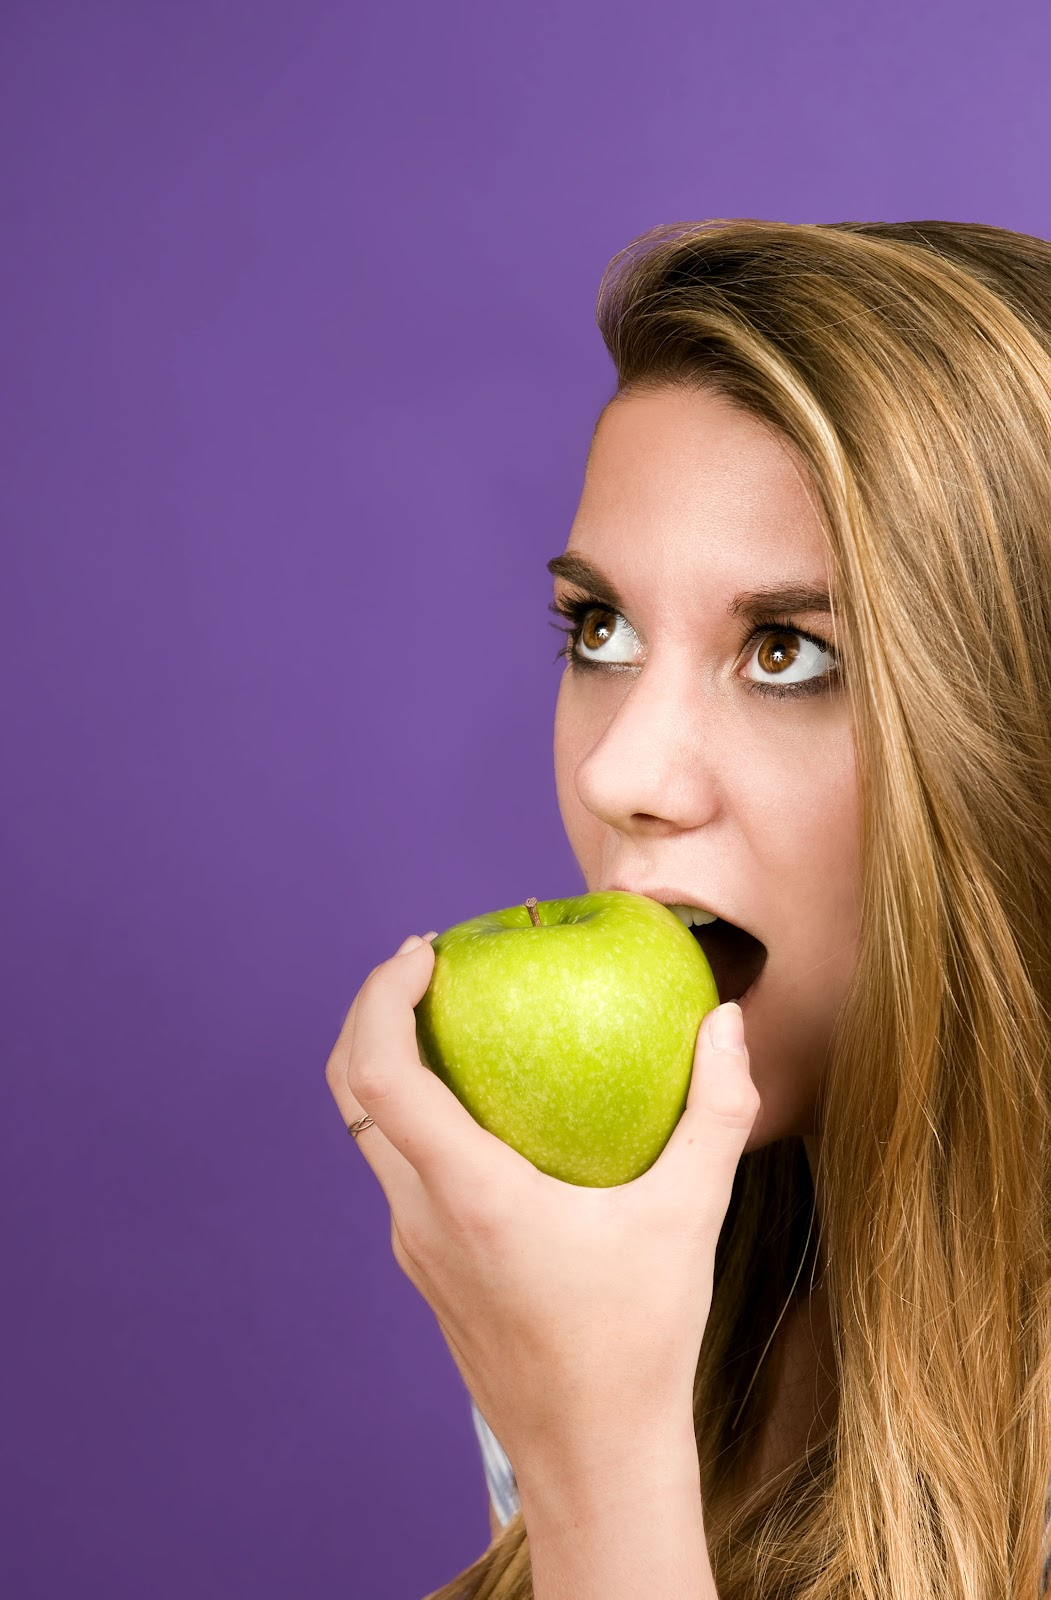 face-of-young-woman-eating-green-apple.jpg